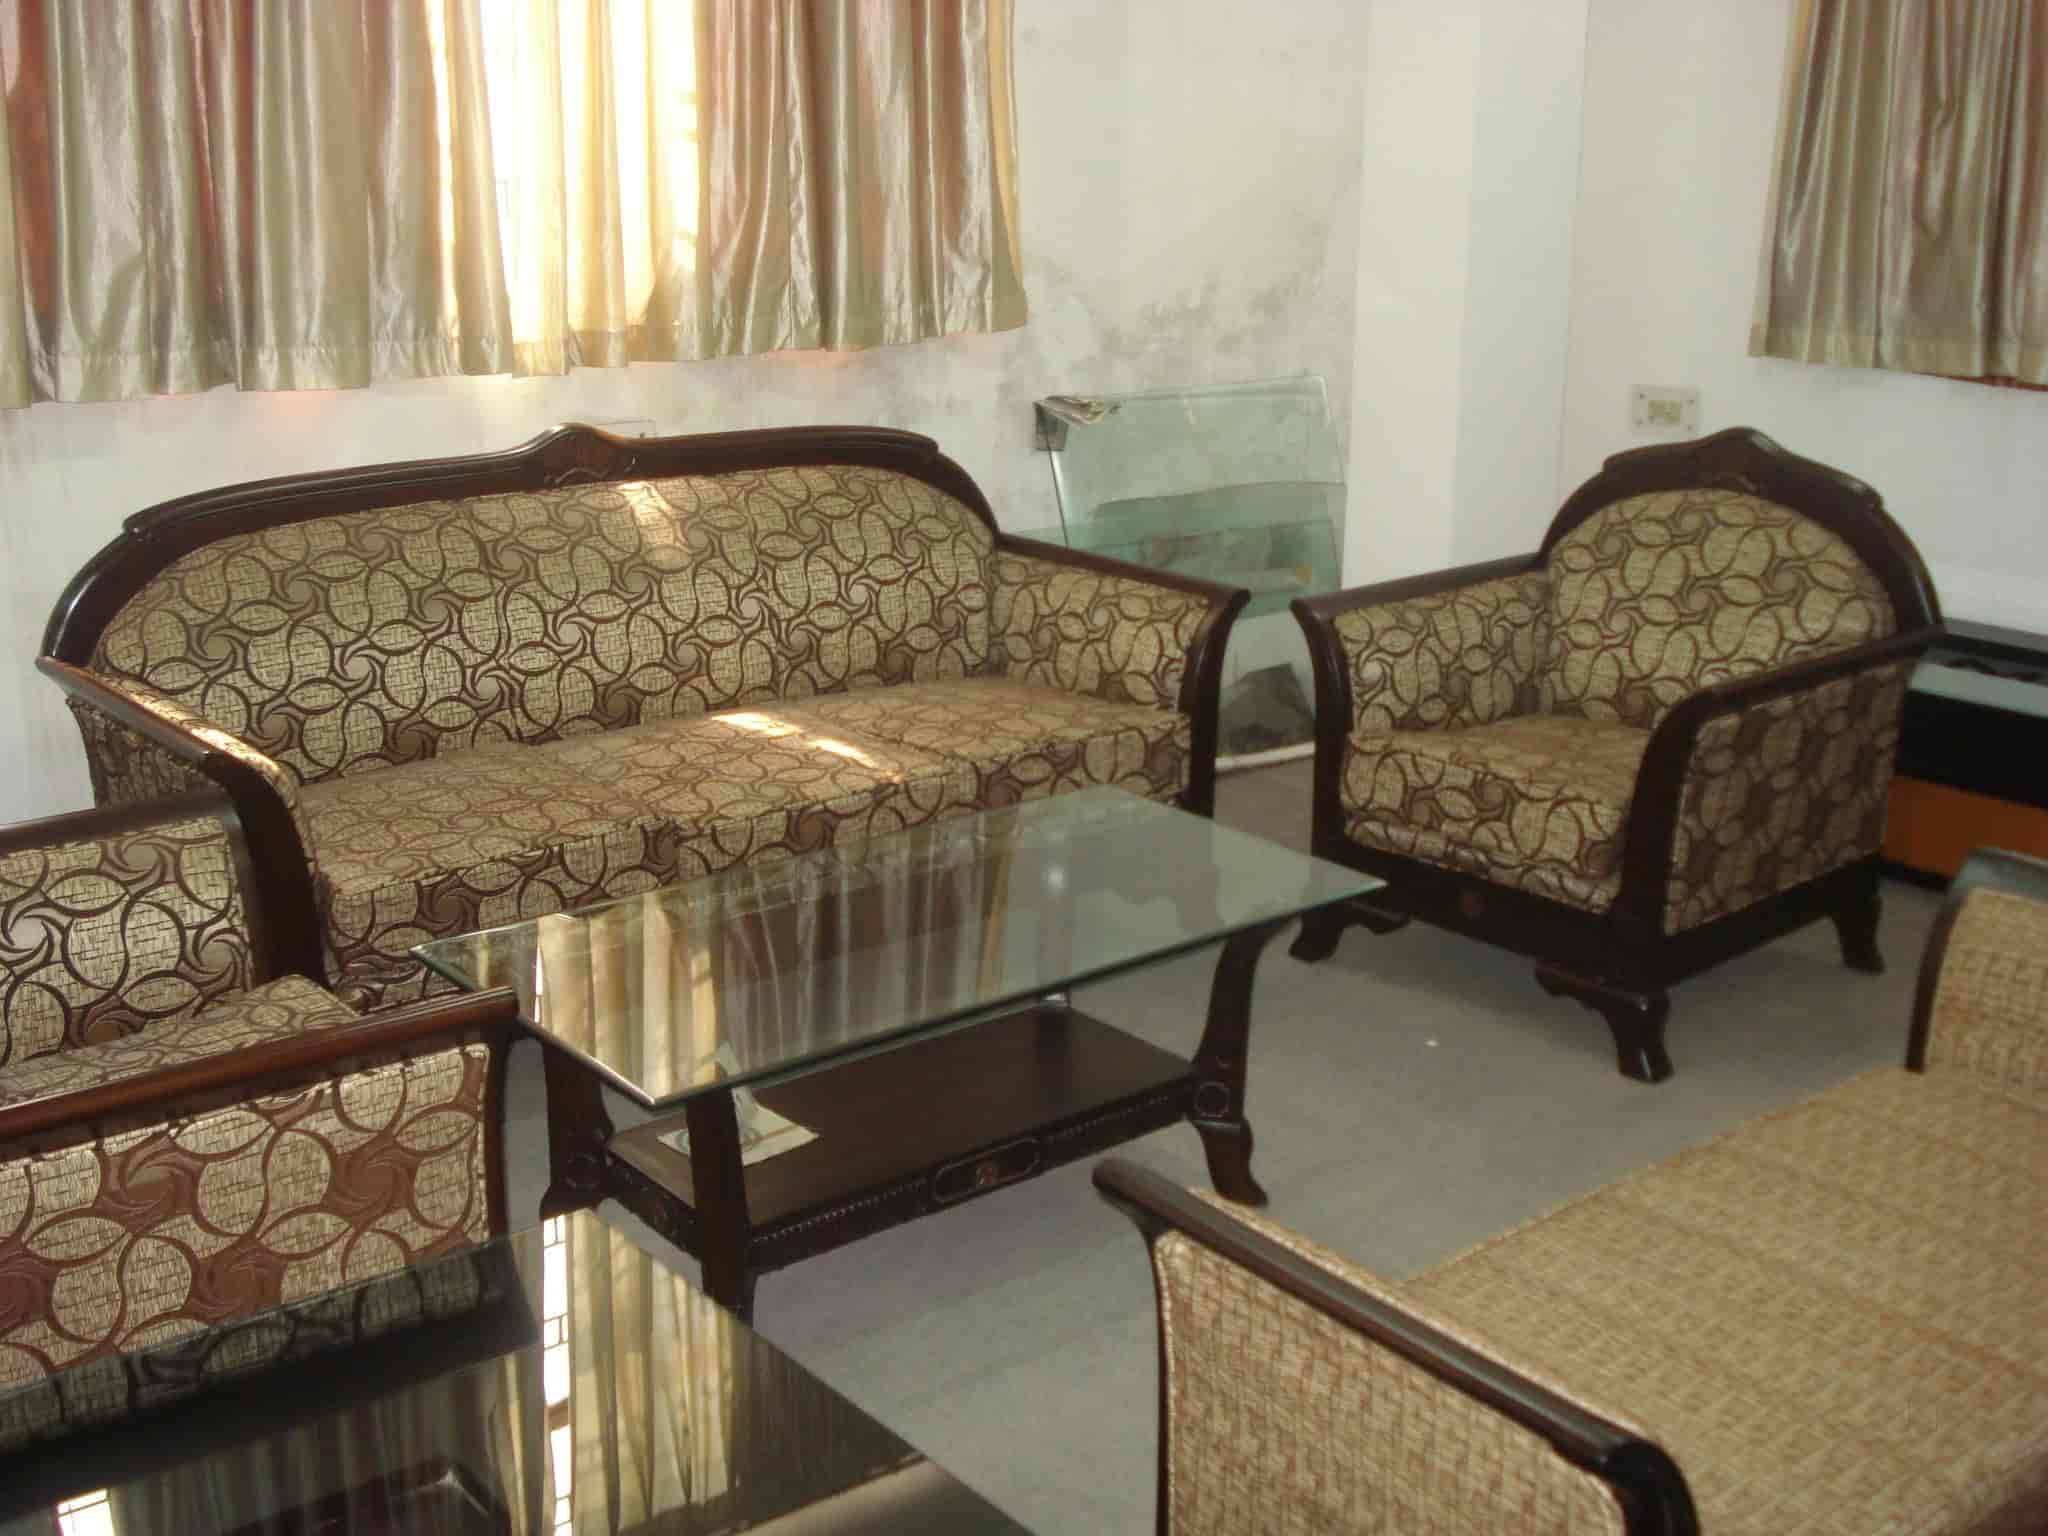 Sofa Repair Visakhapatnam Sofa Factory Seethammapeta Sofa Set Repair Services In